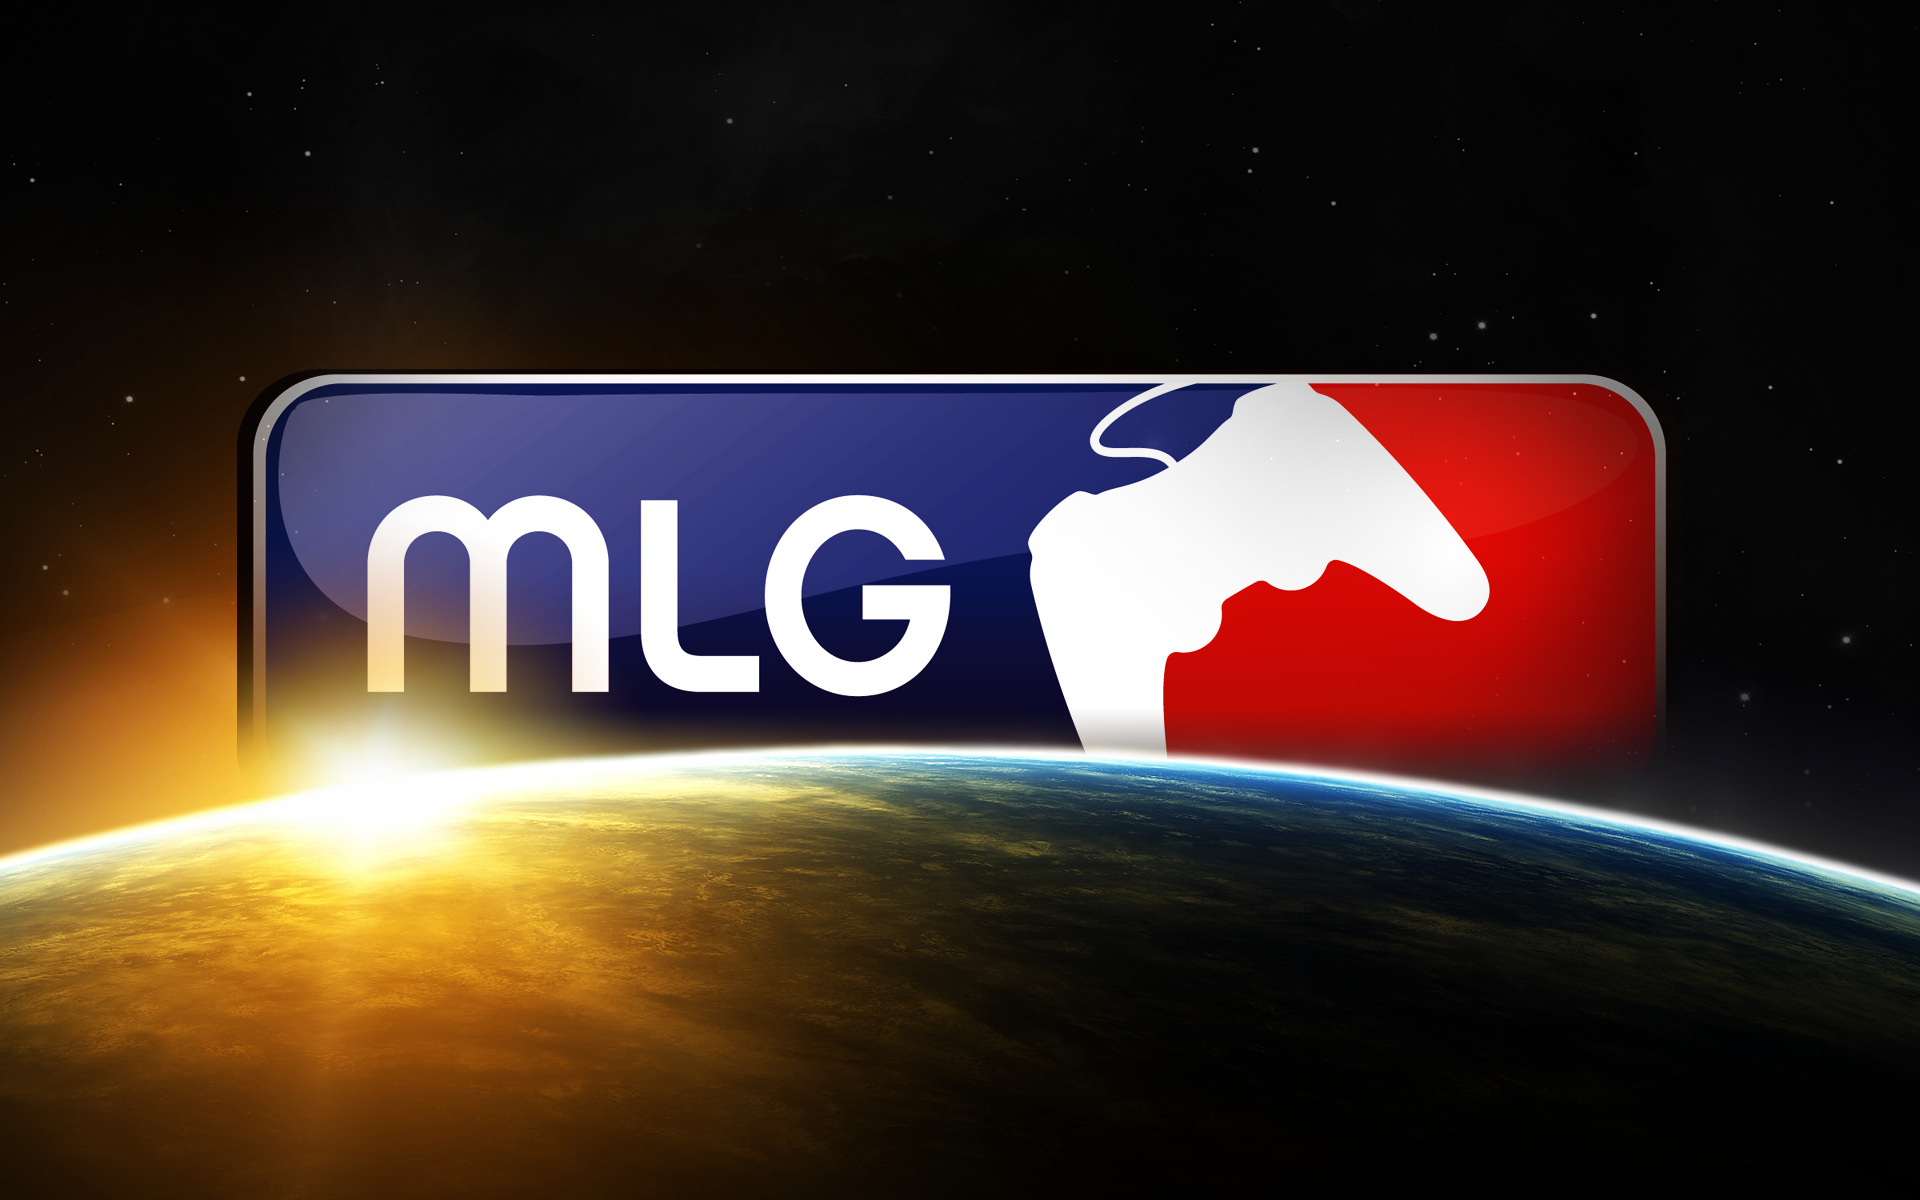 Major League Gaming Wallpapers Rebel Gaming 1920x1200